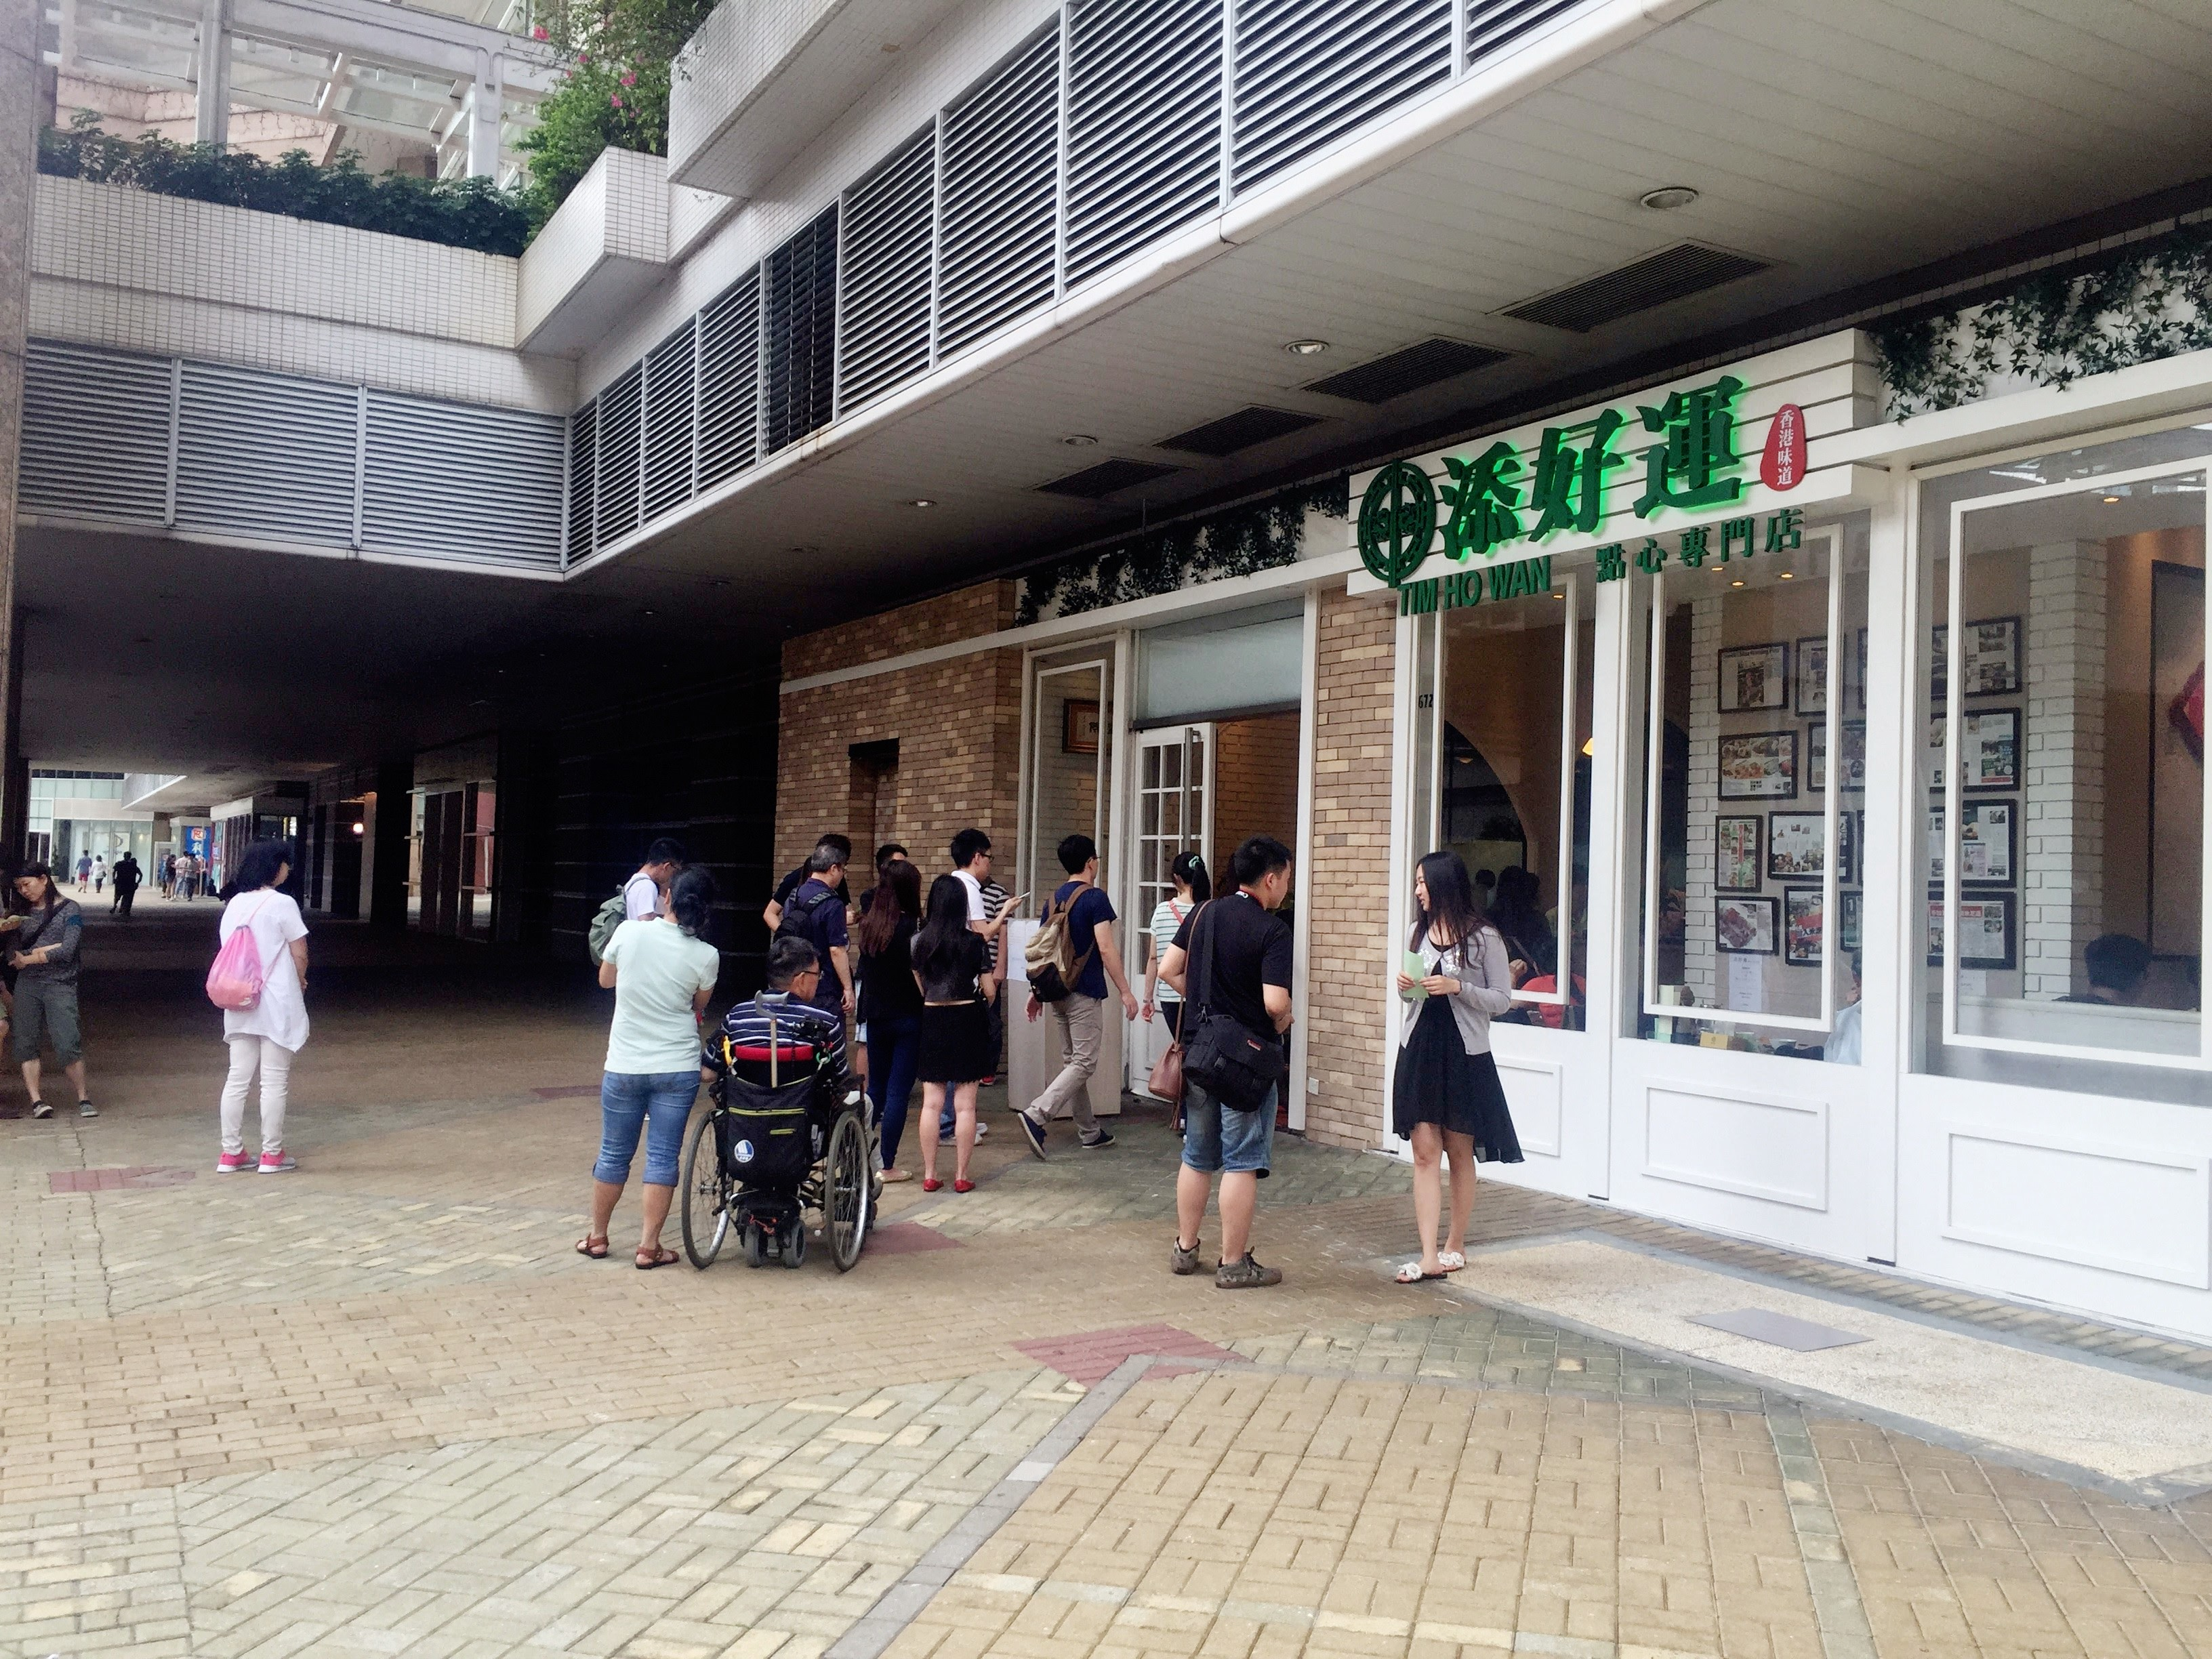 Almost zero queus at the Olympic City branch of Tim Ho Wan